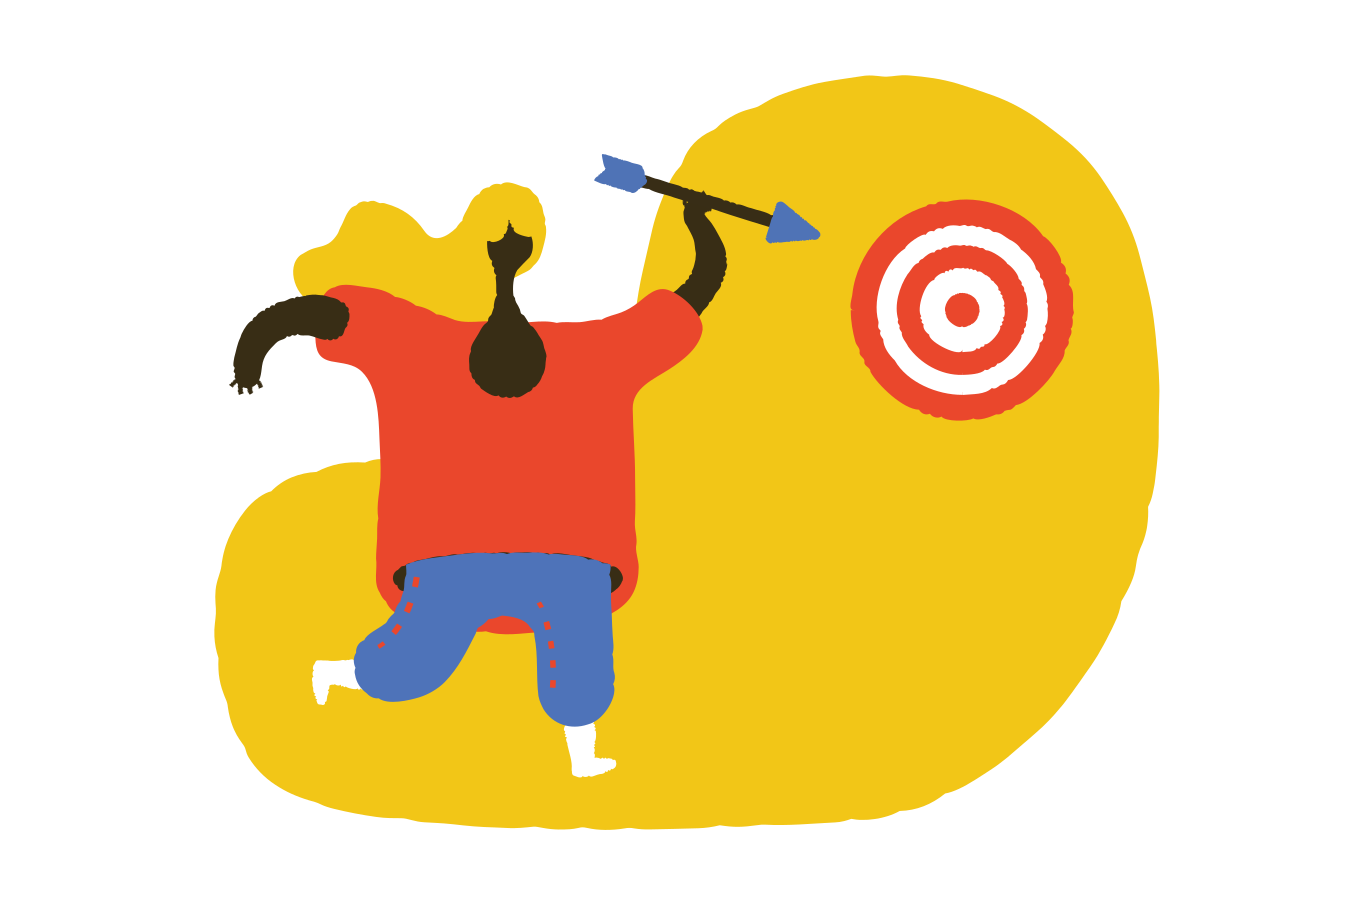 Reaching the goal Clipart illustration in PNG, SVG